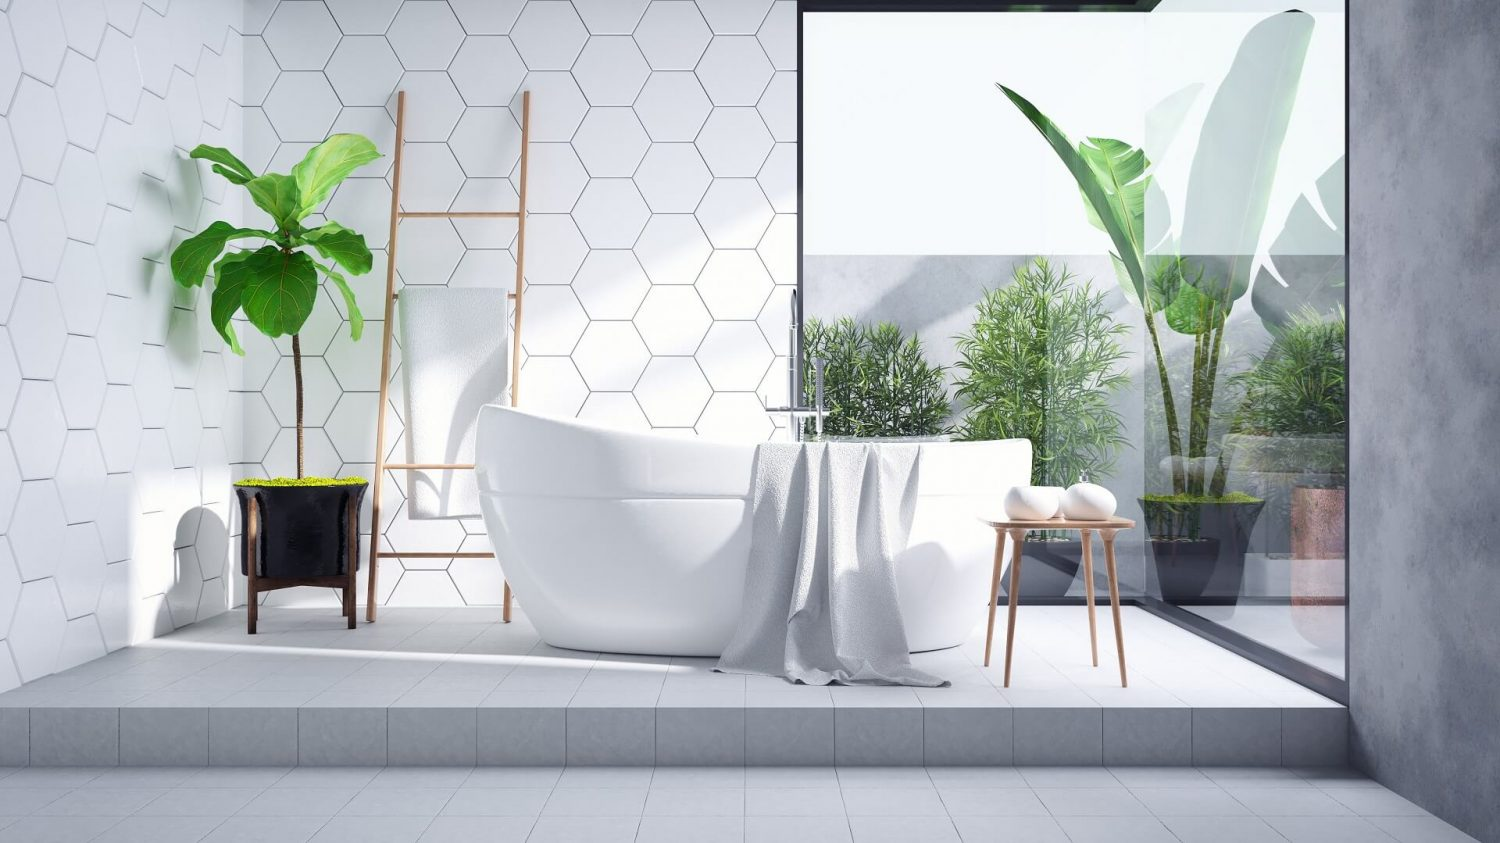 bathroom trends Bathroom Trends 2021/2022: The Hottest Tile Ideas Bathroom tile trends cover scaled